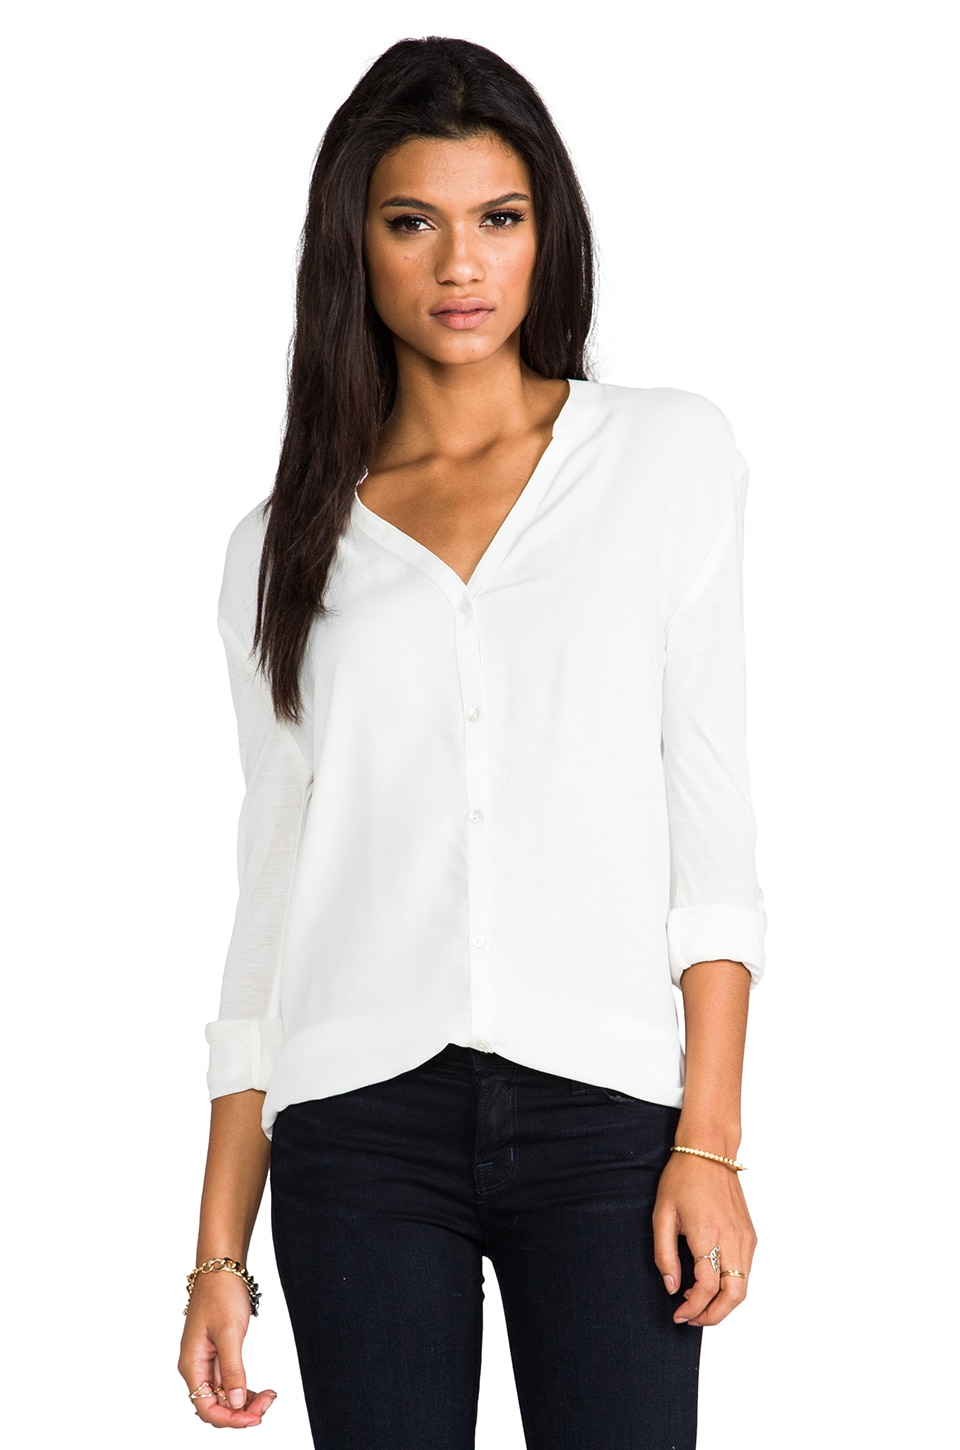 Soft Joie Dane B Blouse in Porcelain